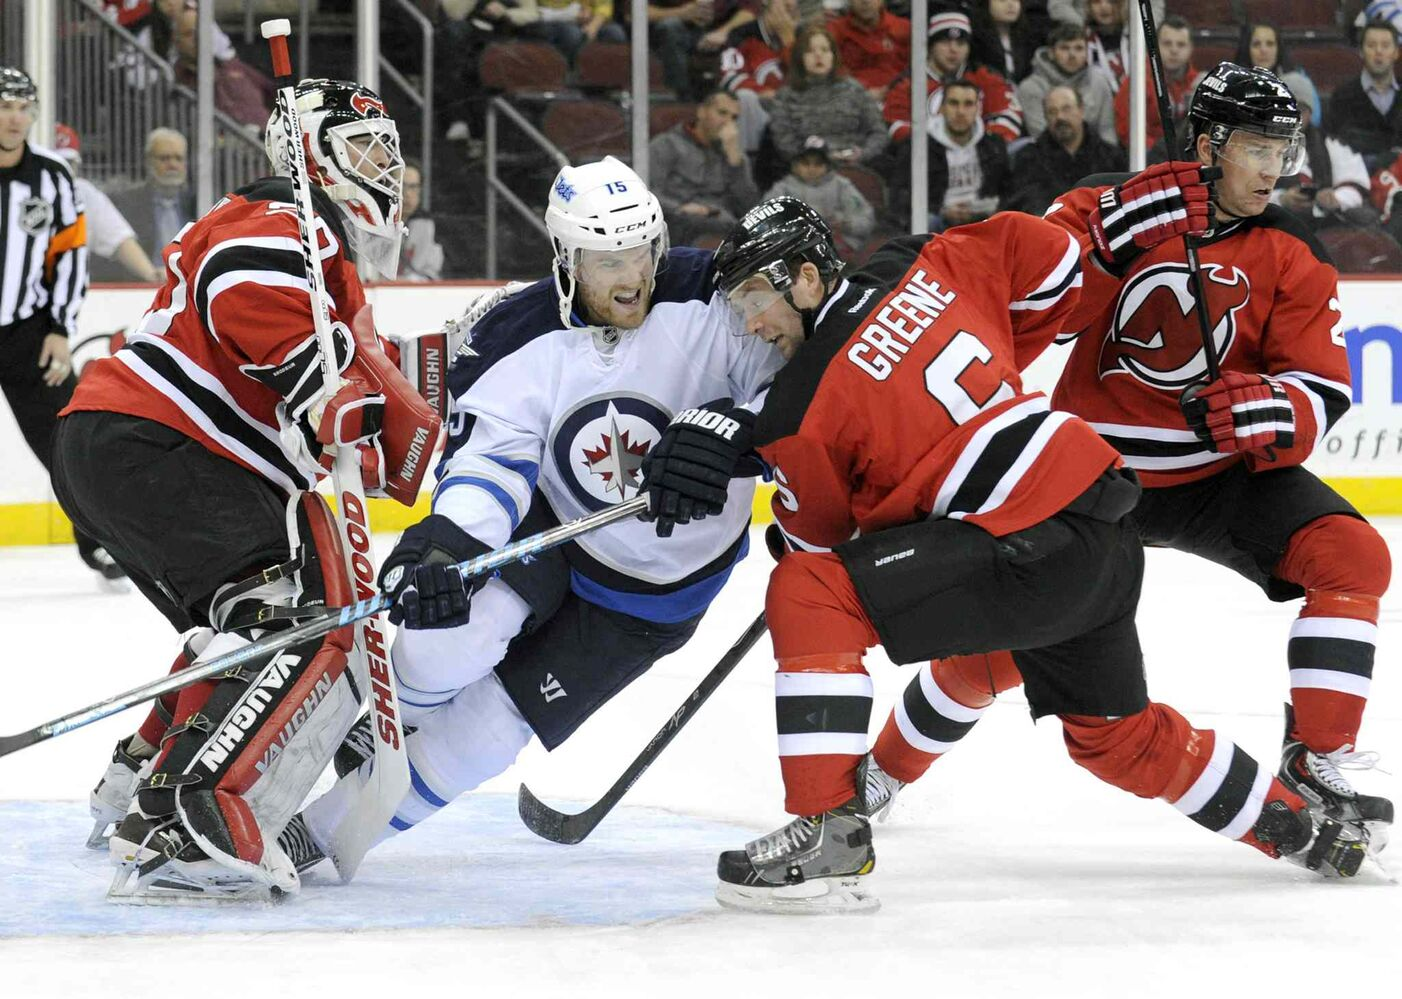 New Jersey Devils' Andy Greene (6) checks Winnipeg Jets' Matt Halischuk into Devils goaltender Martin Brodeur during the first period. (BILL KOSTROUN / THE ASSOCIATED PRESS)